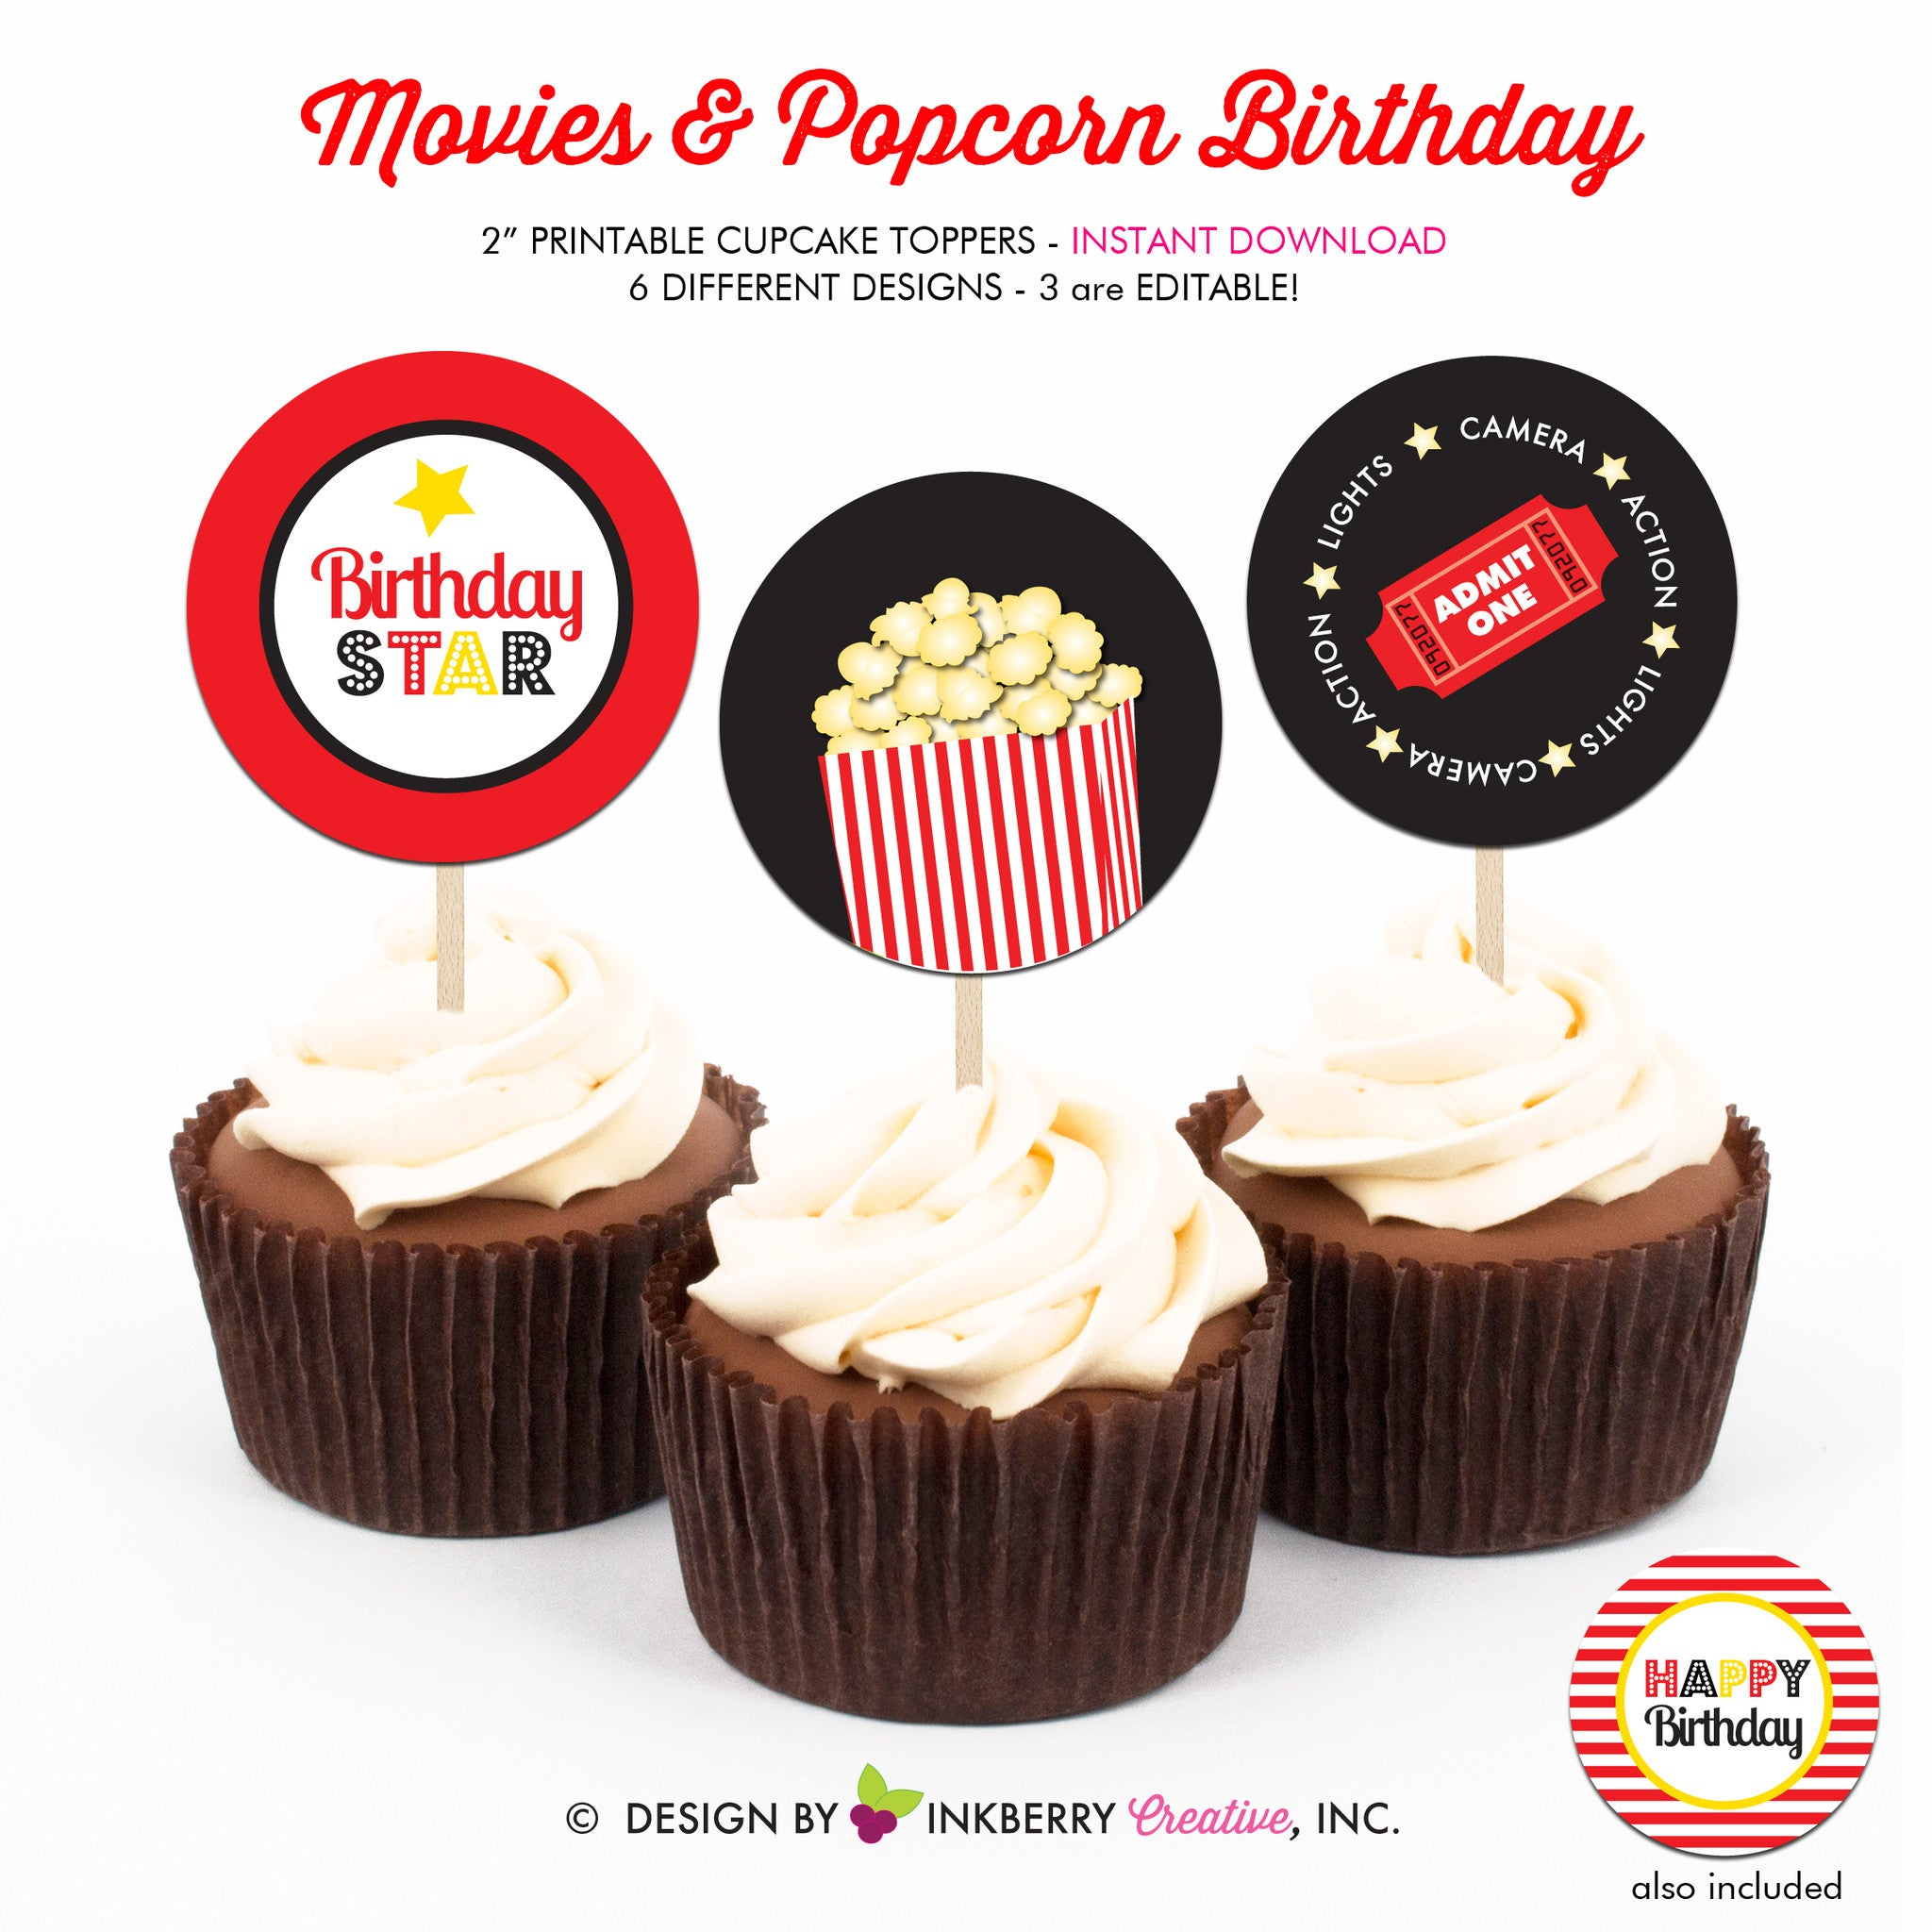 picture relating to Printable Cupcake Toppers referred to as Flicks and Popcorn - Printable Cupcake Toppers - Immediate Down load PDF History